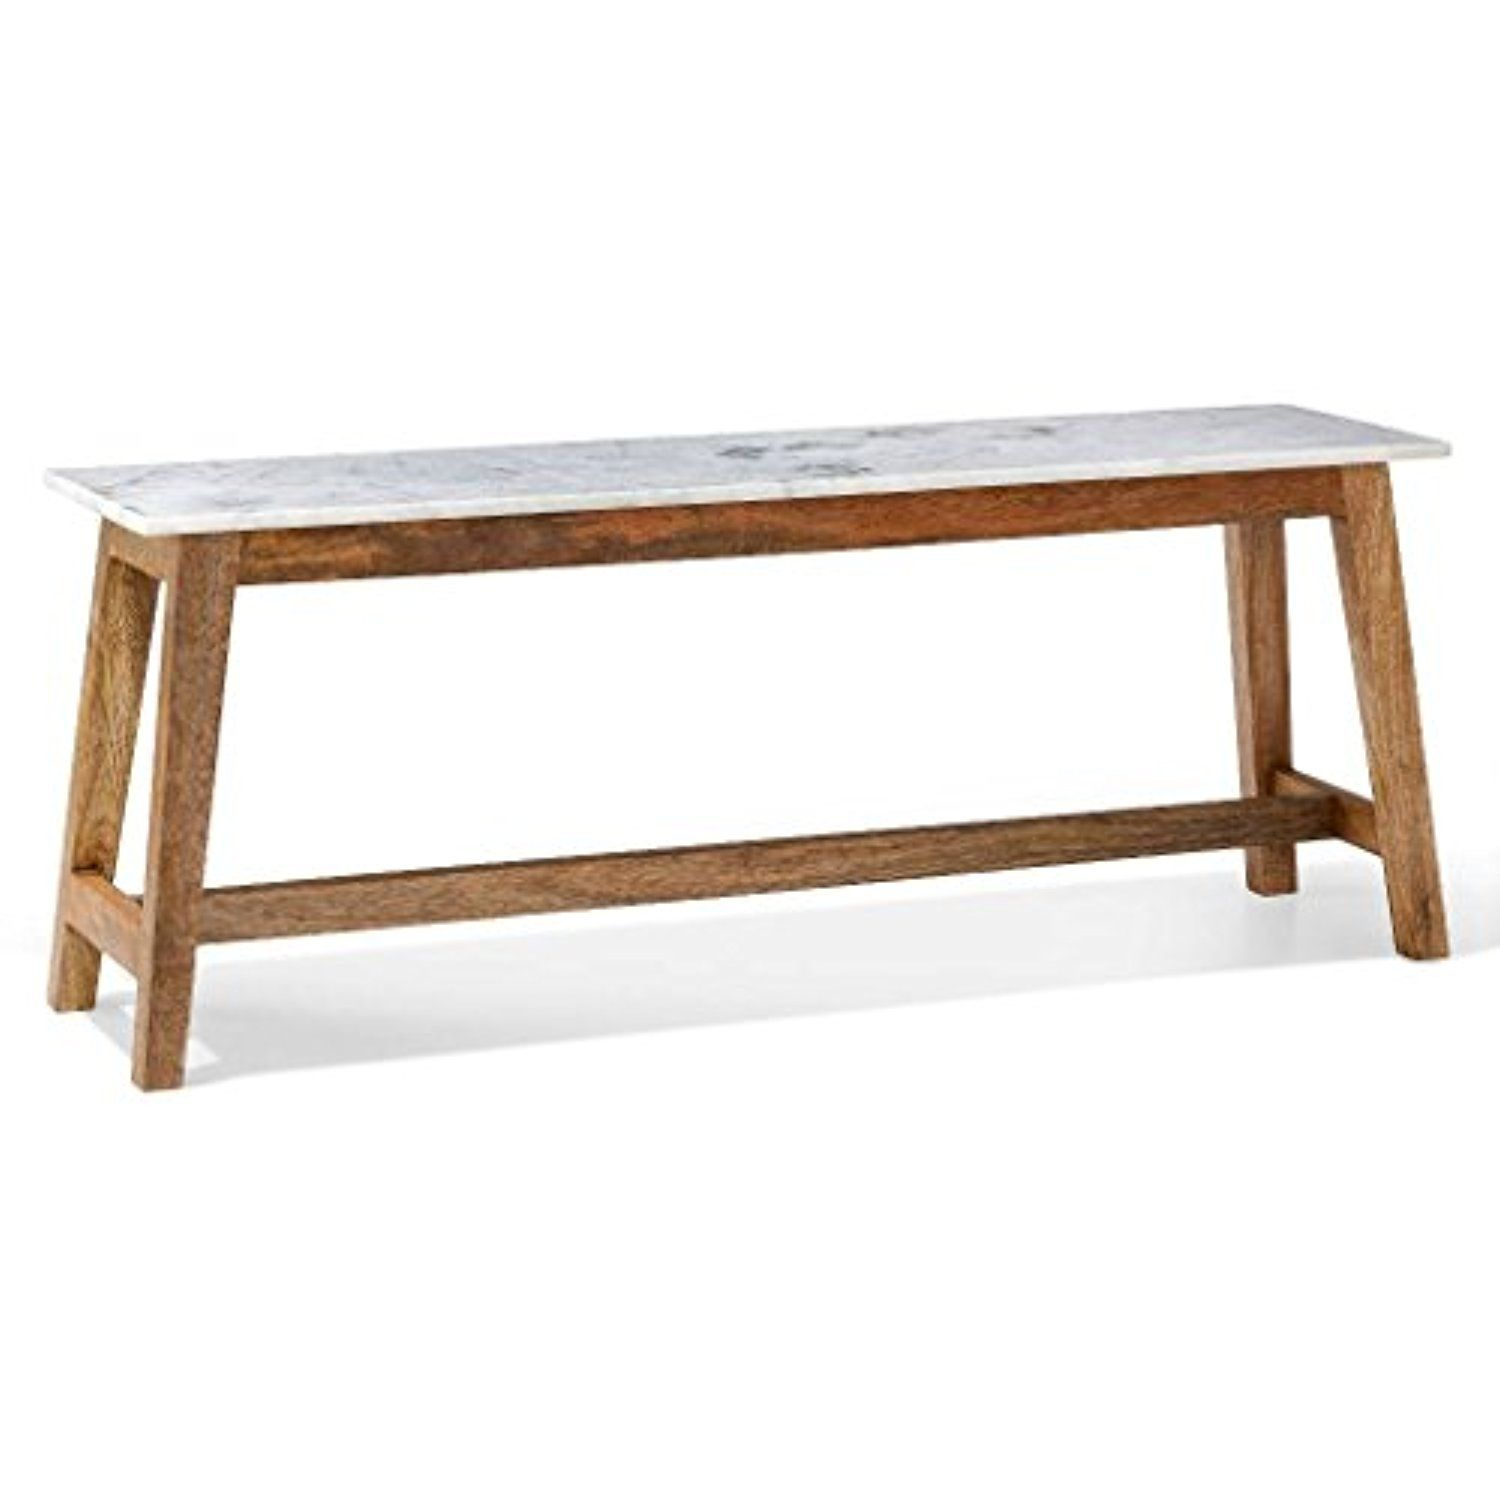 threshold lanham marble top accent table bench natural finish awesome products selected anna churchill gray lamps best wood for coffee patio umbrella drawer unit oval end carolina